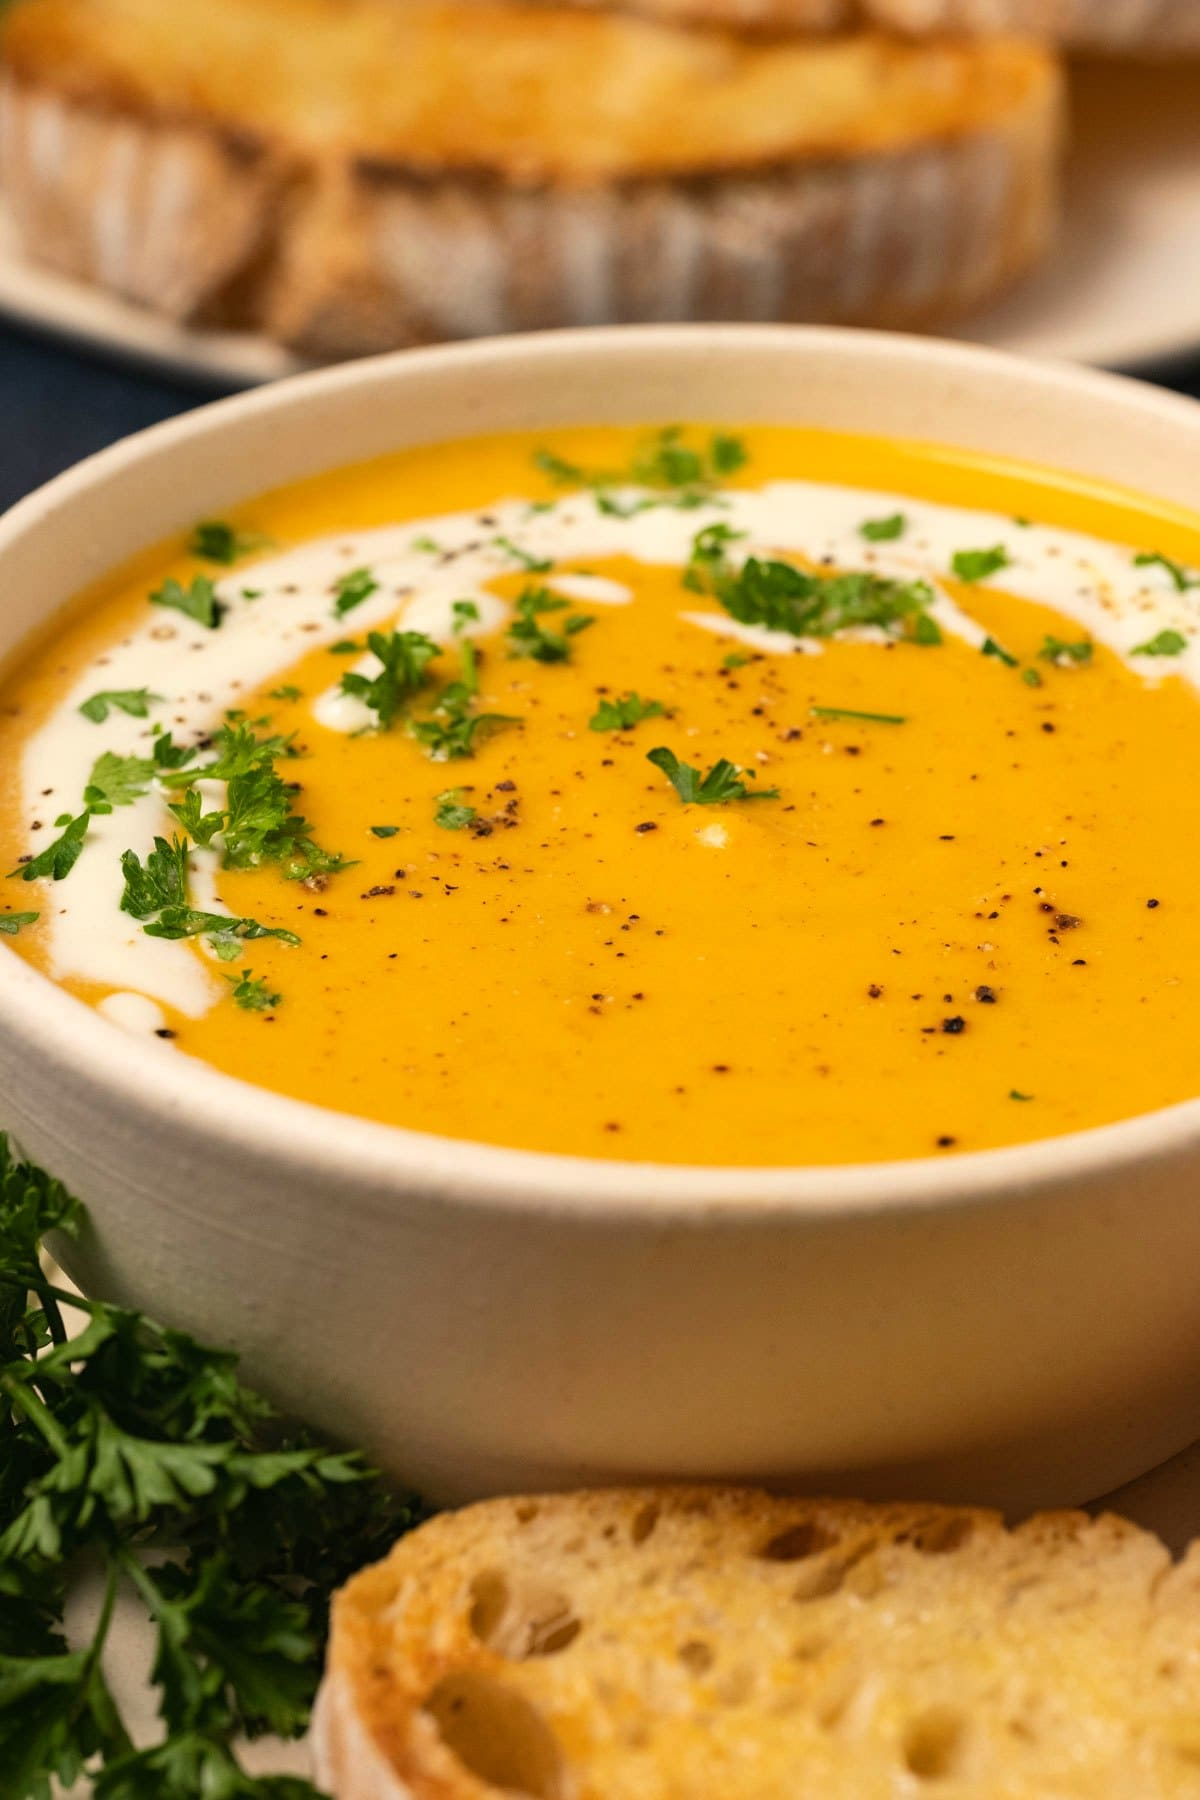 Sweet potato soup with fresh chopped parsley and cream in a bowl.